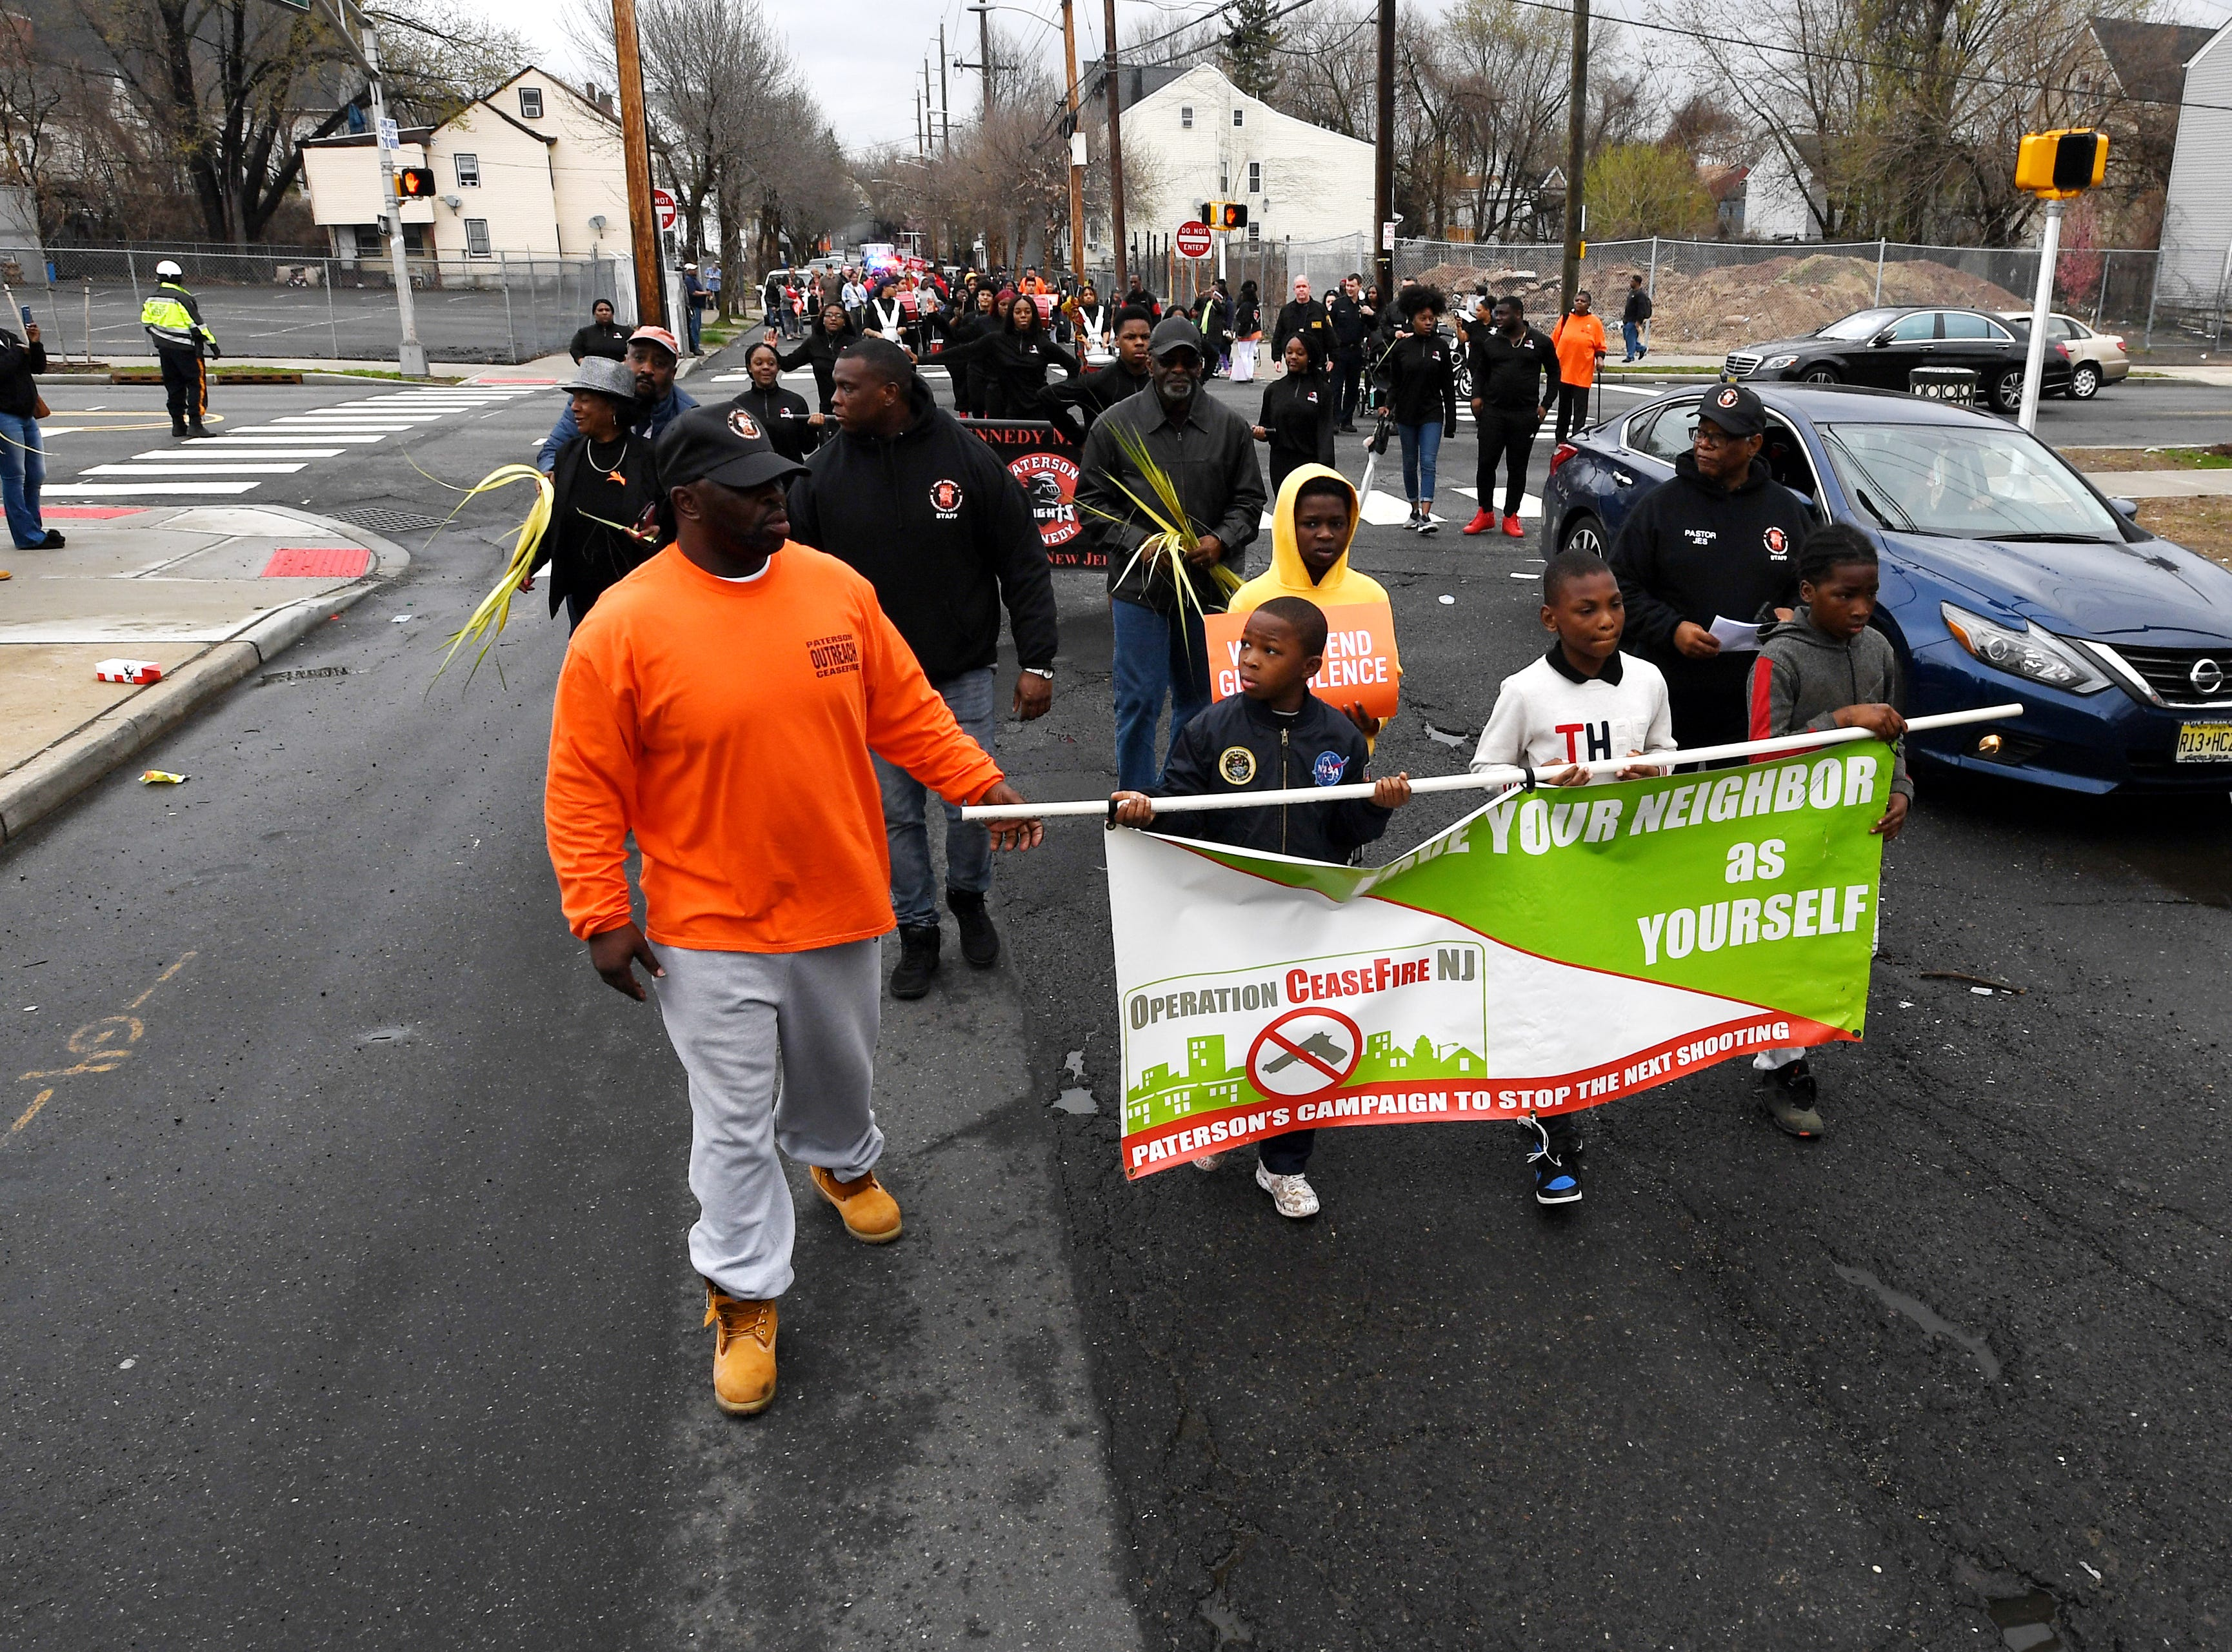 Paterson Peace March on North Main Street on Saturday, April 13, 2019.